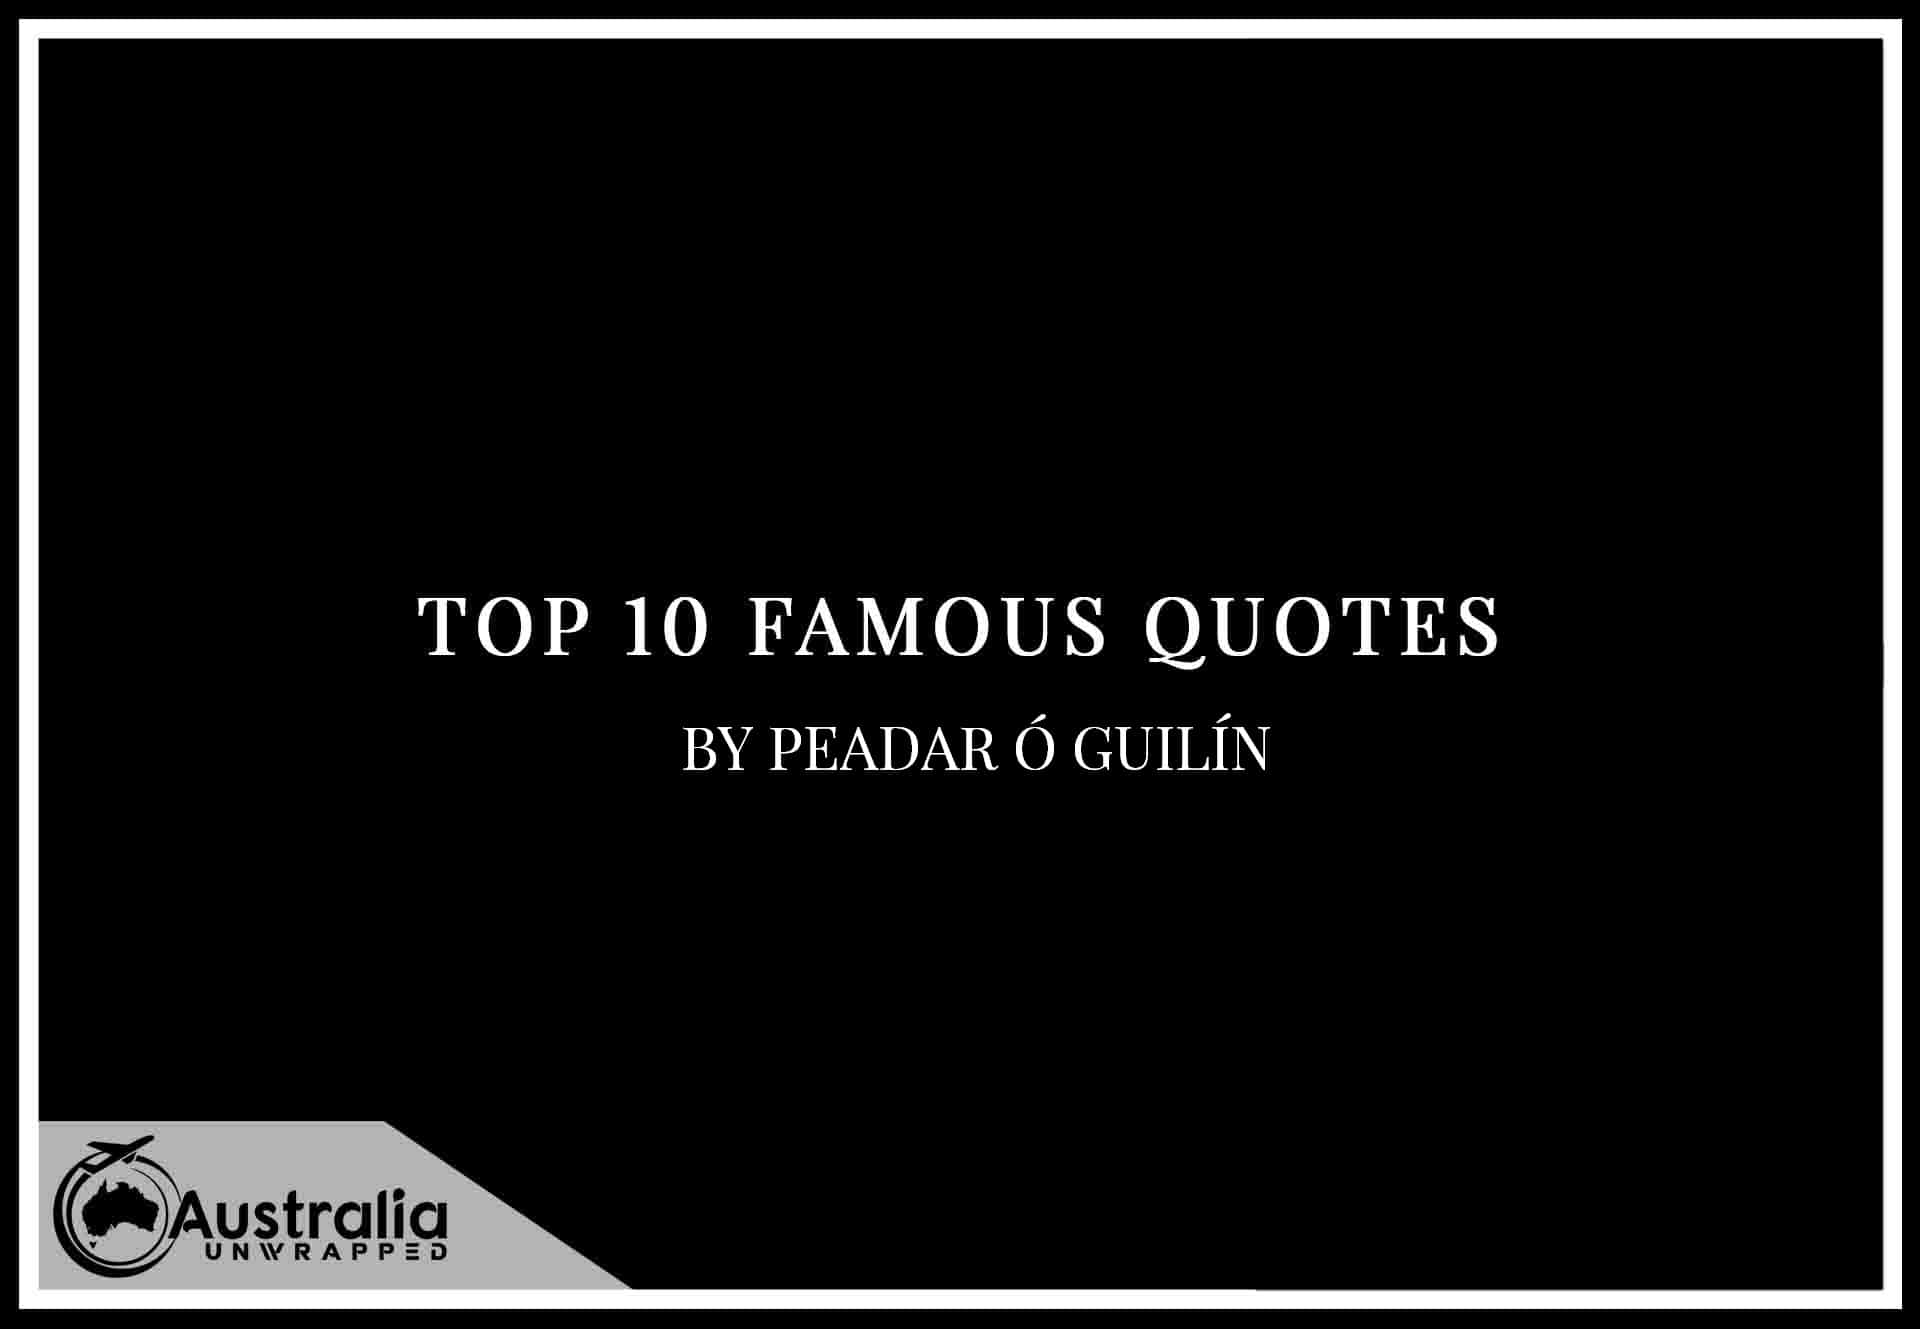 Top 10 Famous Quotes by Author Peadar Ó Guilín